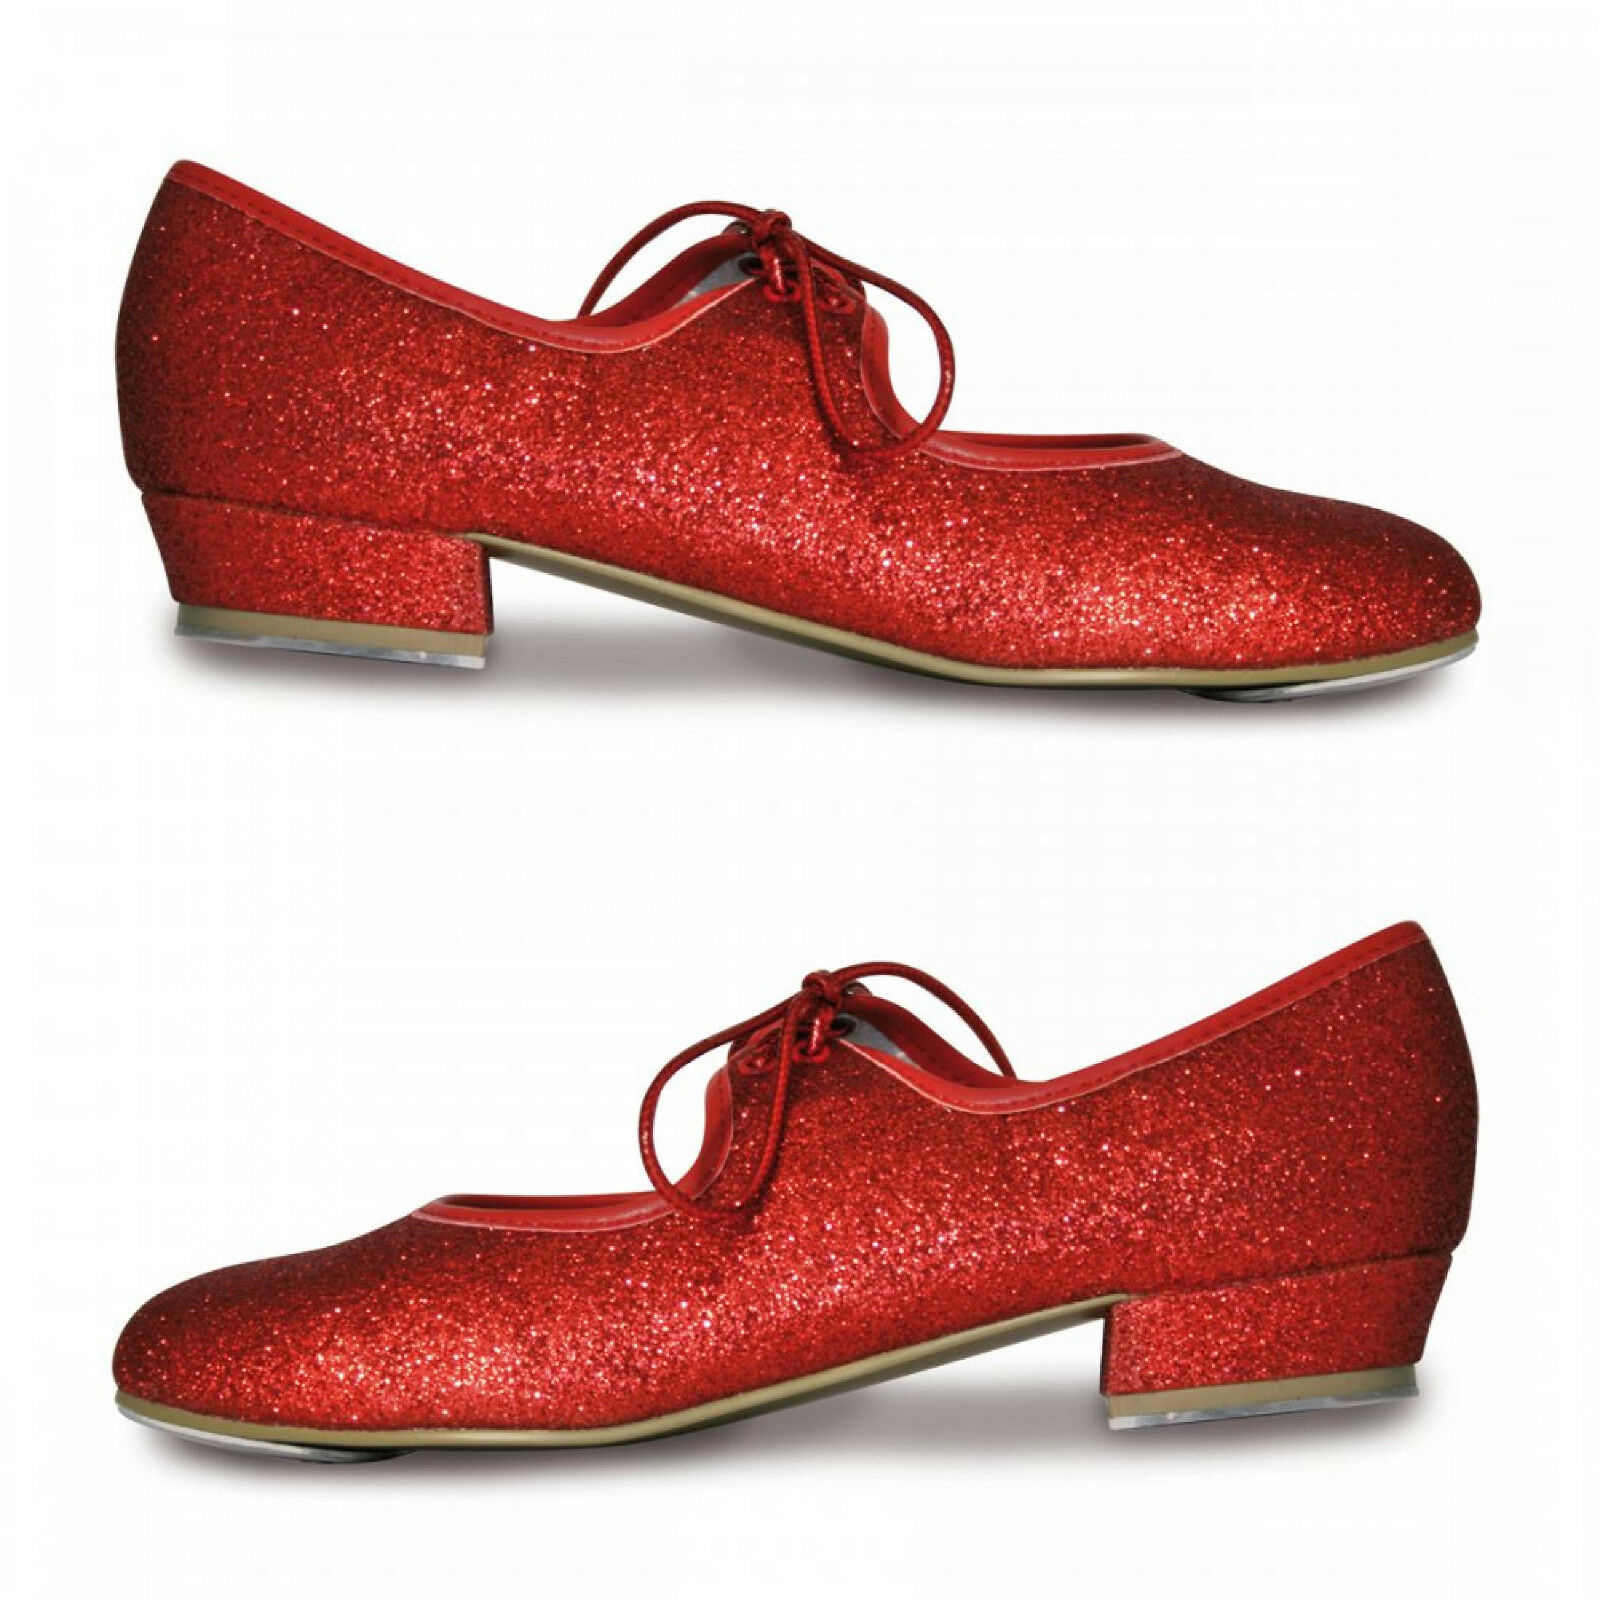 ROCH VALLEY LOW HEEL GLITTER EFFECT TAP SHOES CHILD 5-ADULT 8 RUBY RED DOROTHY